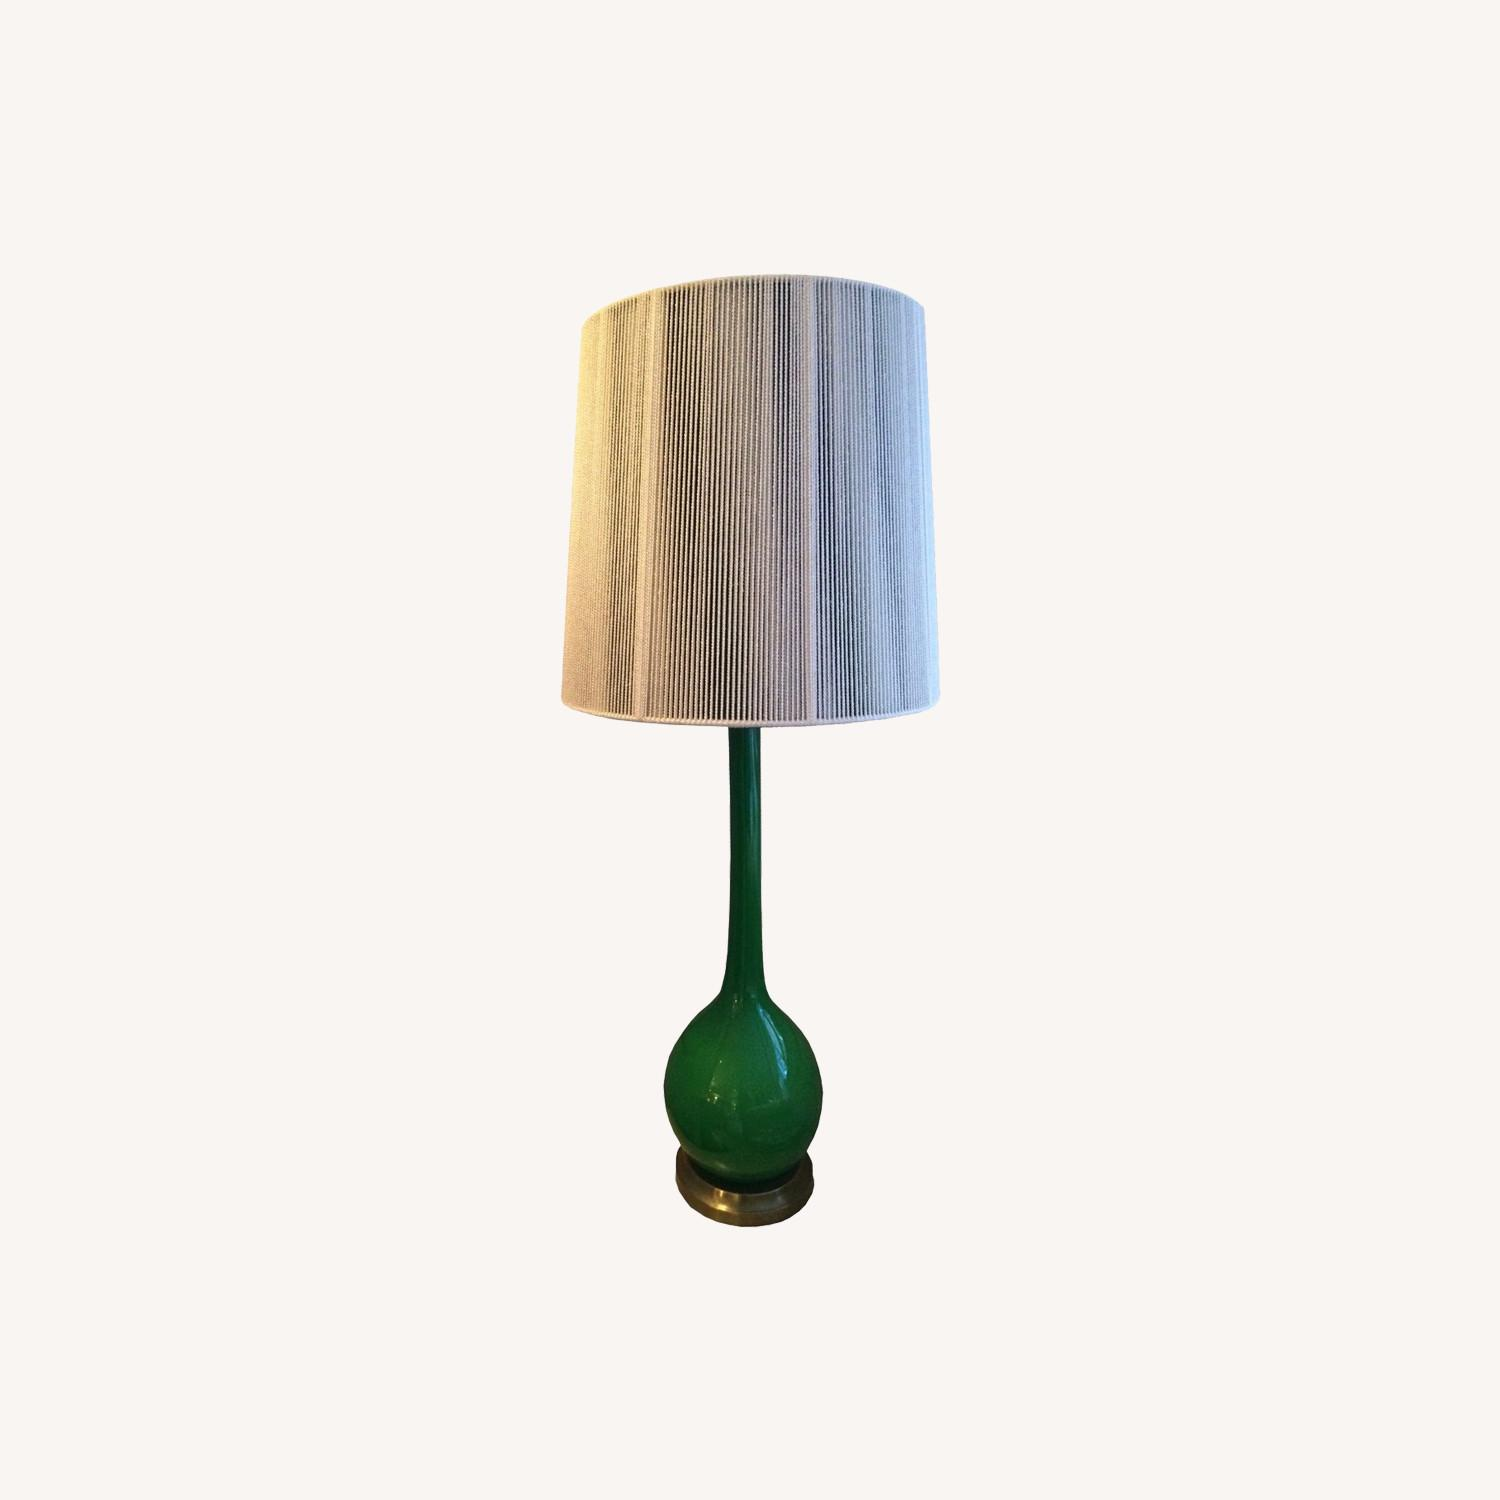 Pair of 1960s Green Glass Venetian Lamps with Custom Shades - image-4